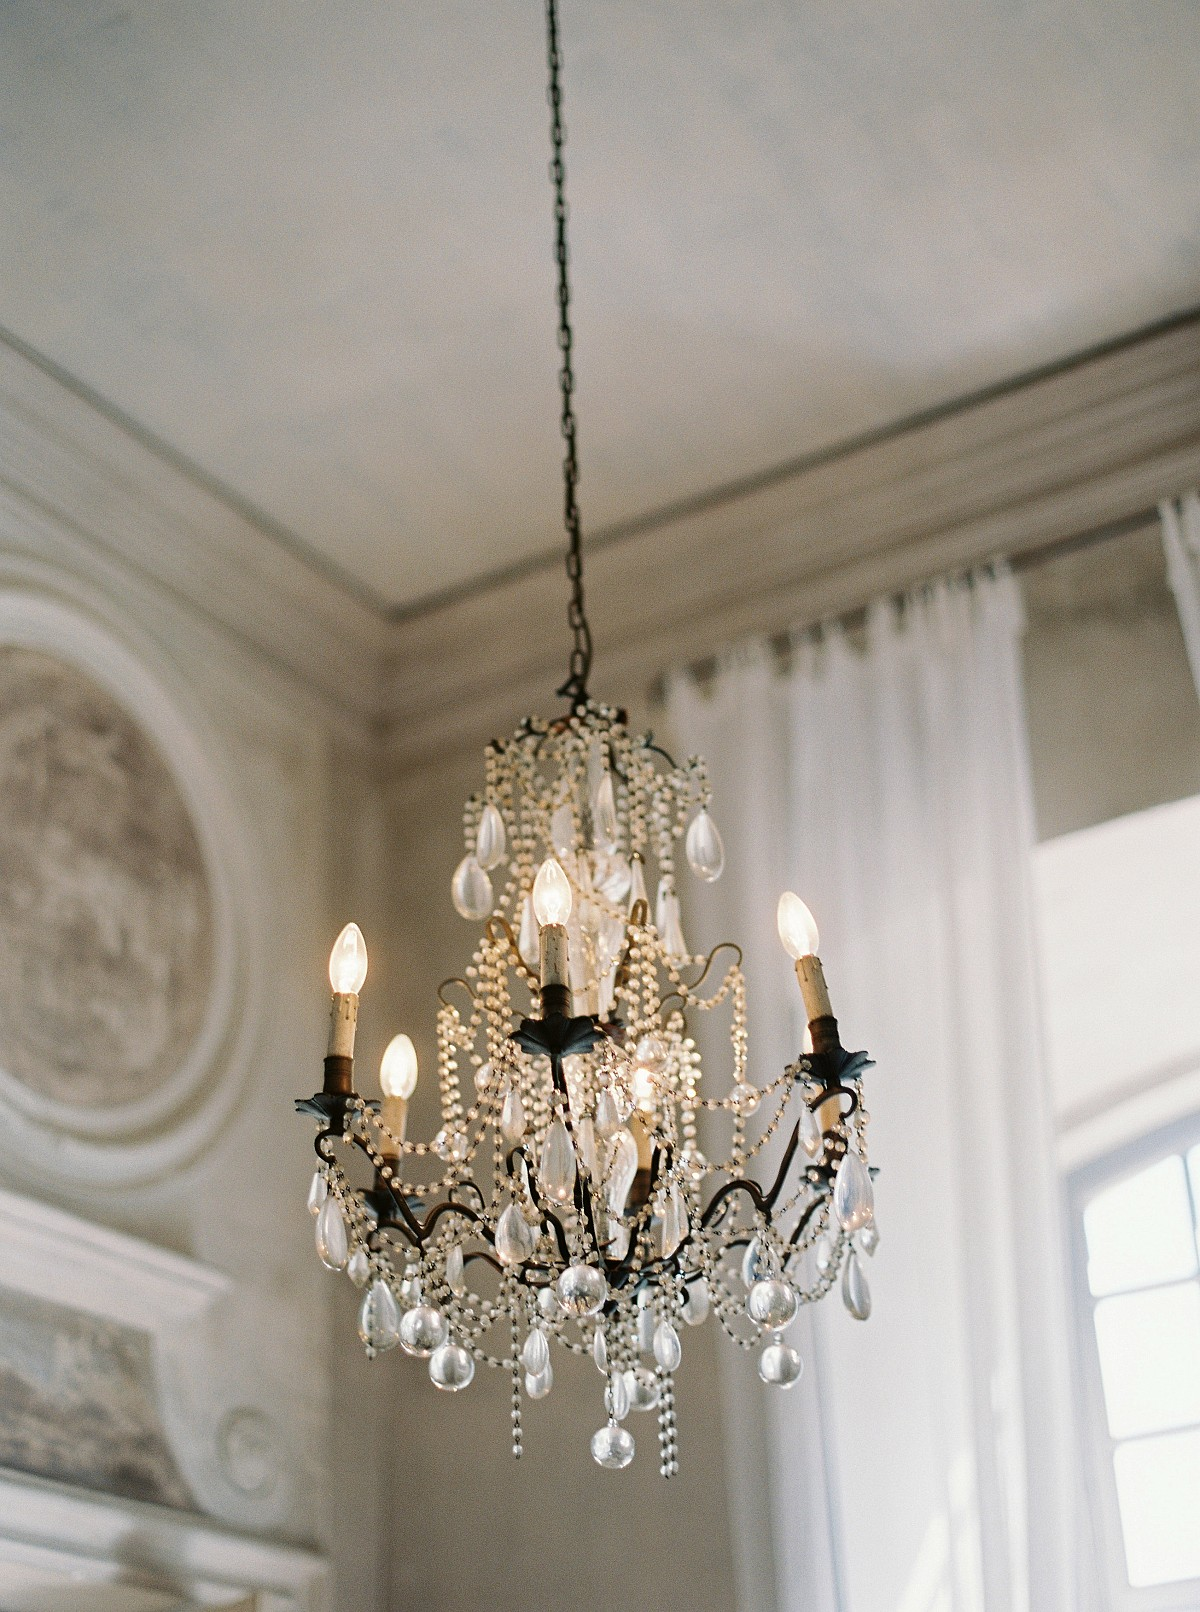 French Chateau Wedding Inspiration by Laura Gordon on Wedding Sparrow